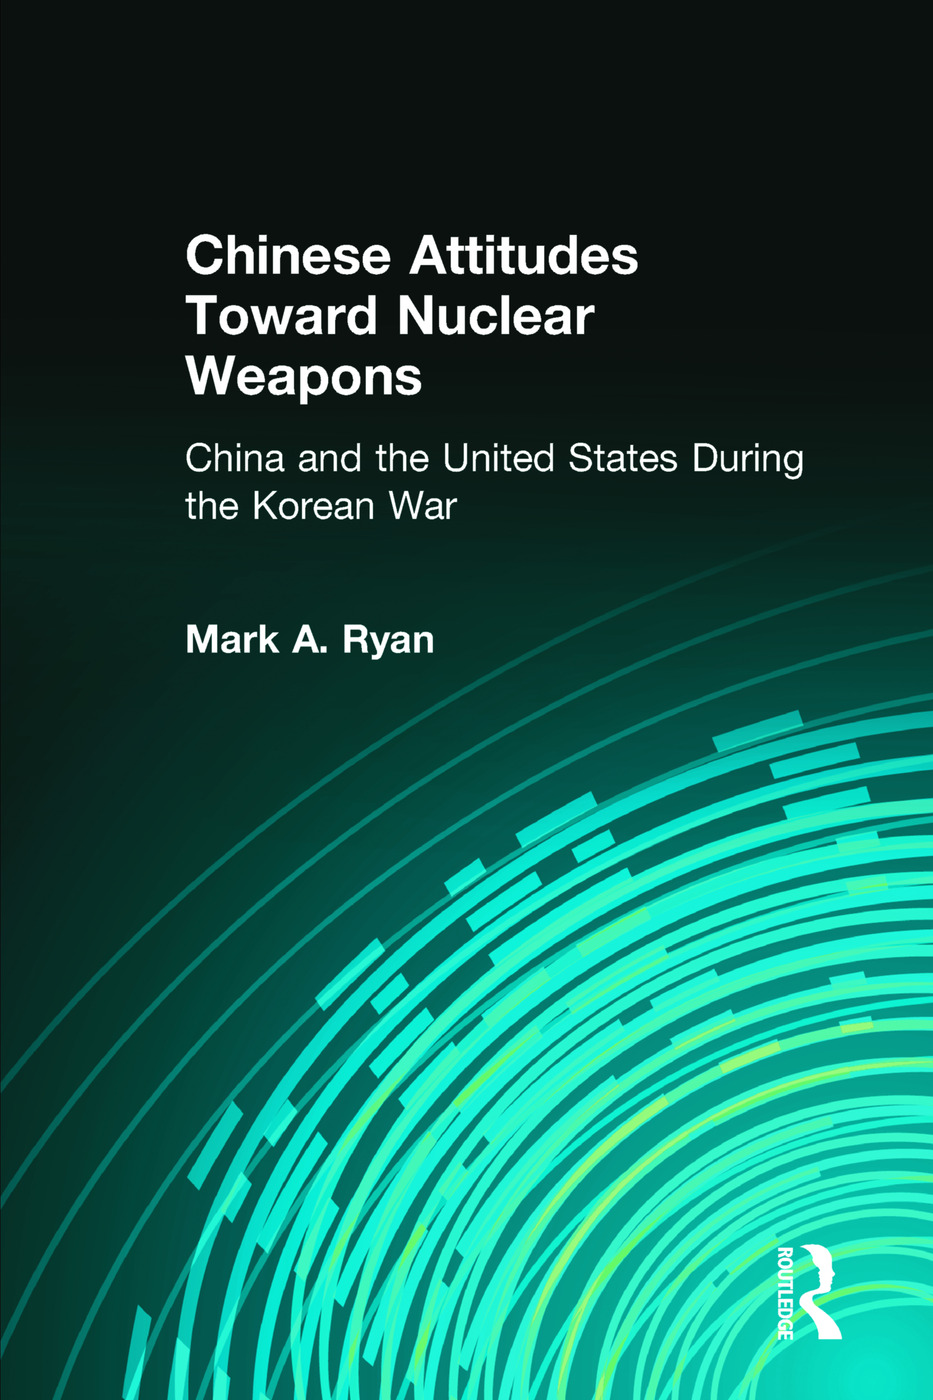 Chinese Attitudes Toward Nuclear Weapons: China and the United States During the Korean War: China and the United States During the Korean War, 1st Edition (Hardback) book cover